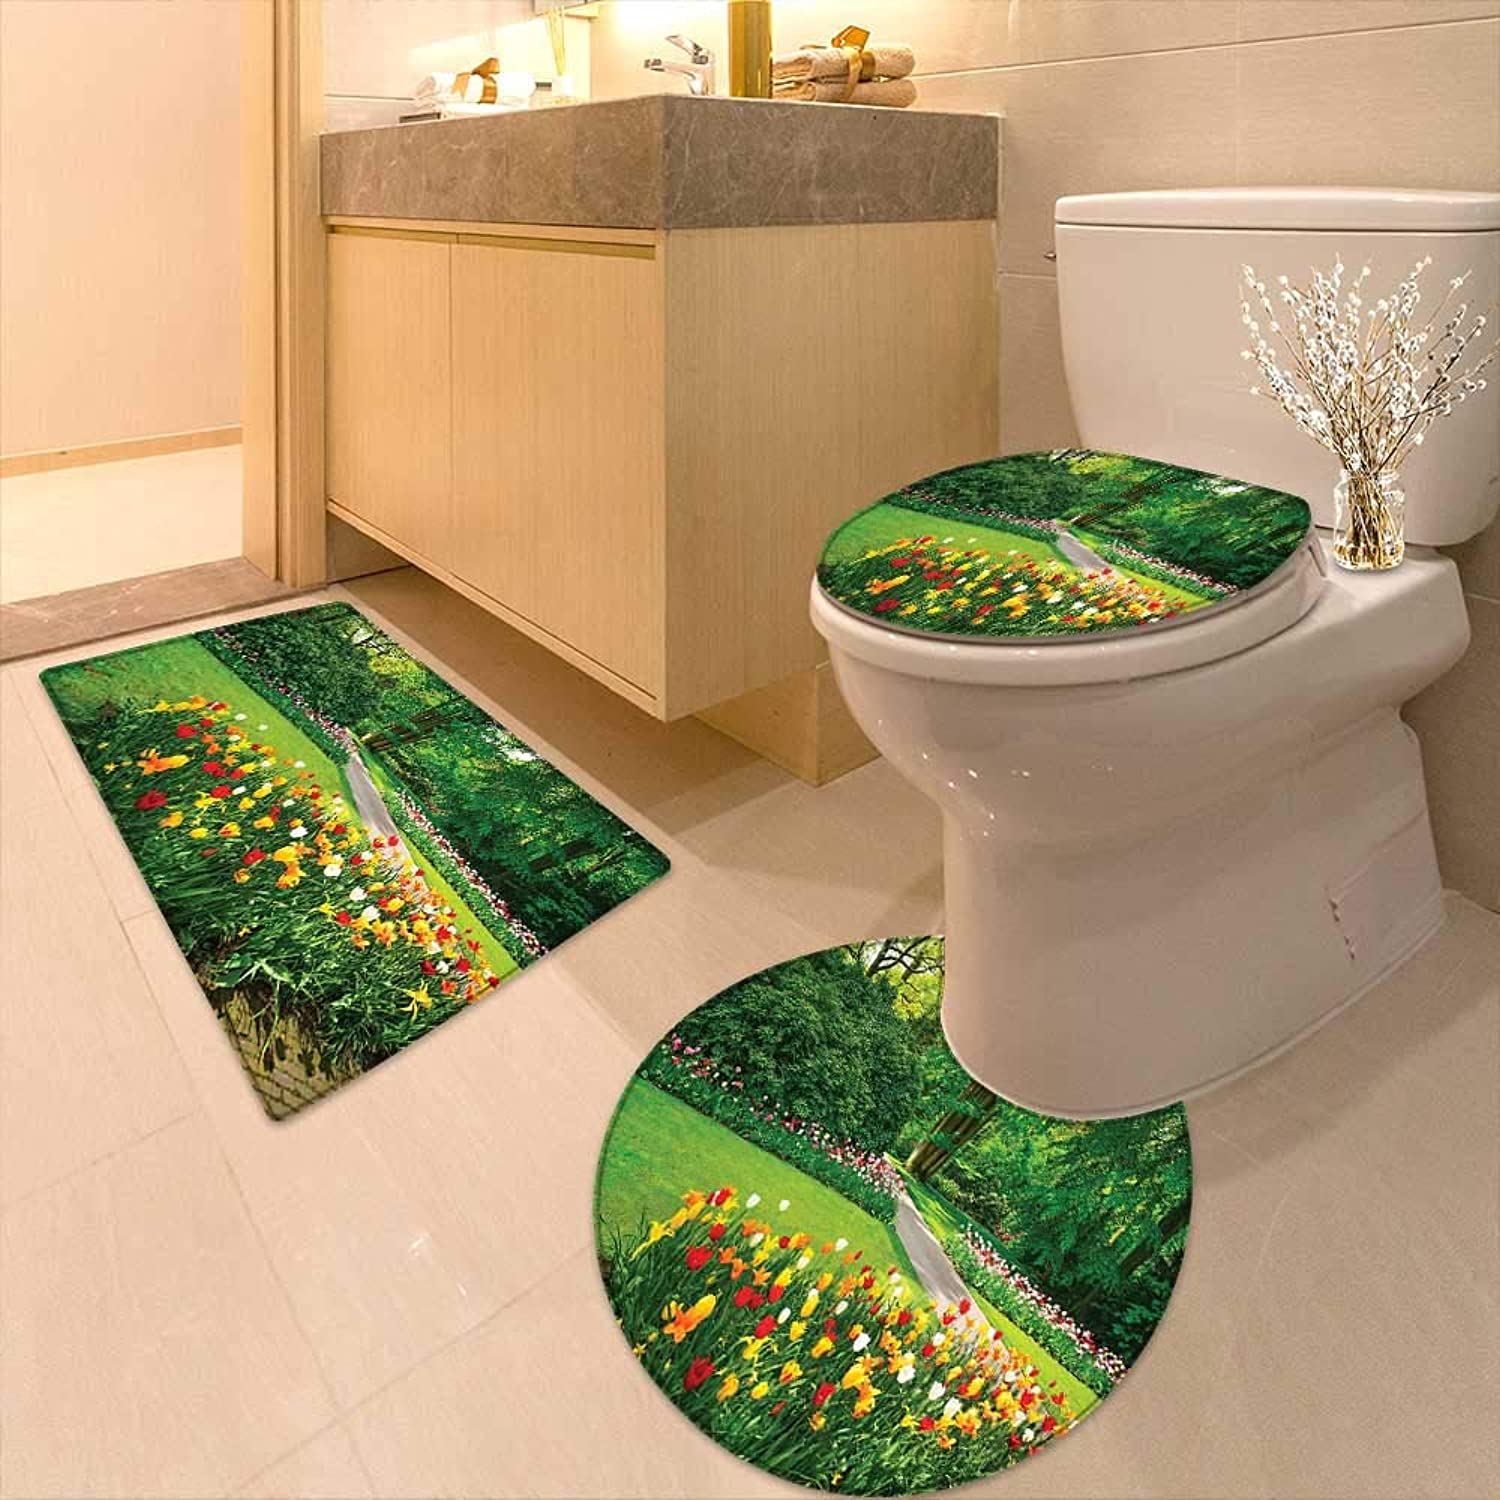 Printsonne U-Shaped Toilet Mat with Tulip Flowers and Trees Springtime in KeukenhofNetherlands Europe Green Red Washable Non-Slip